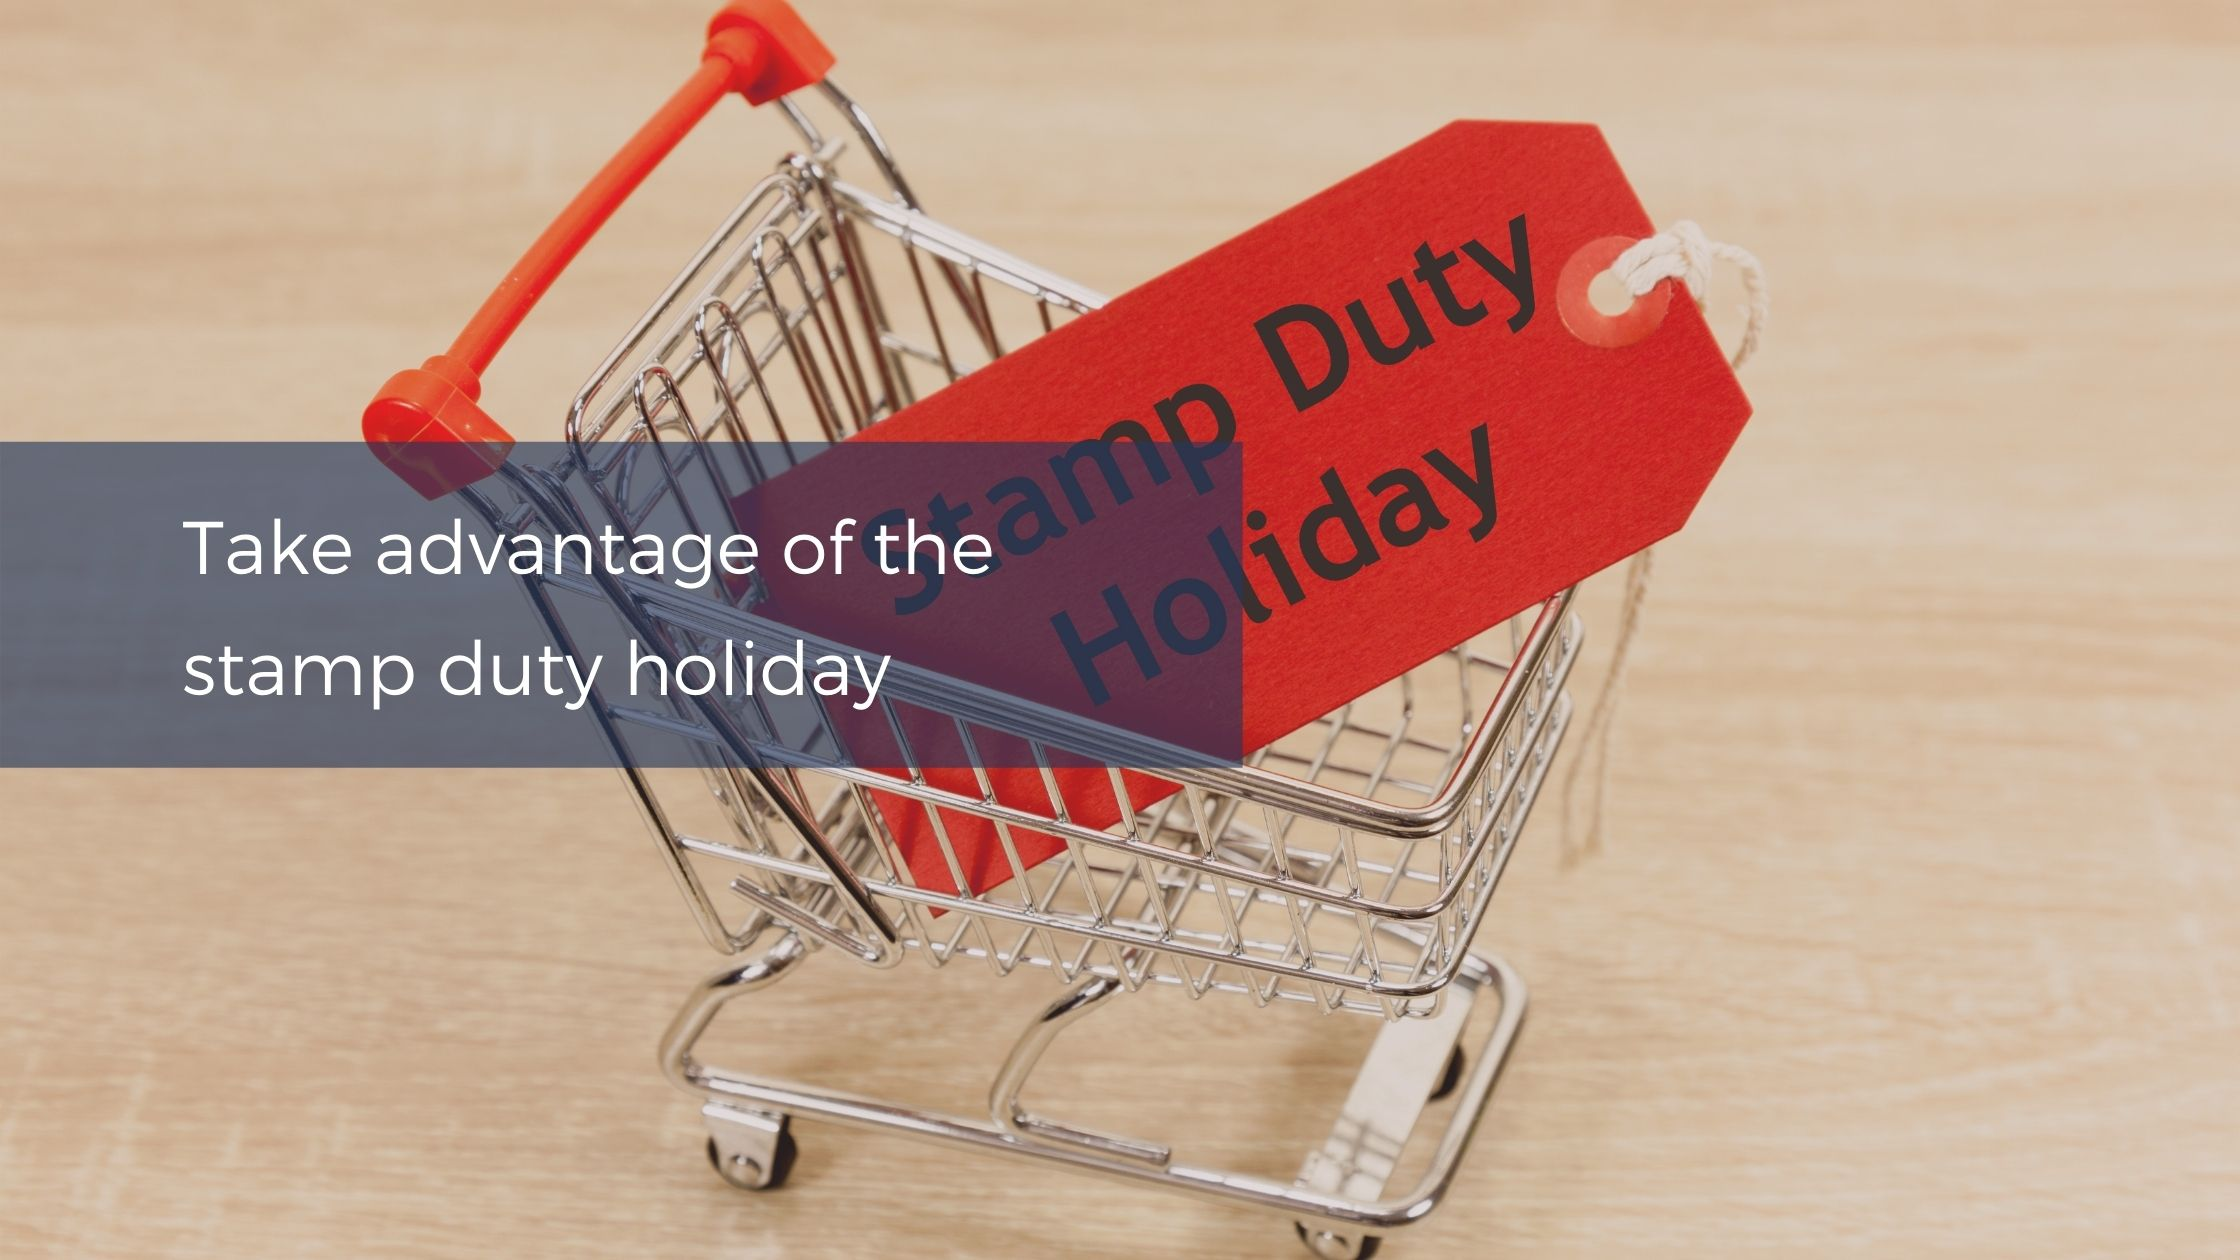 Take advantage of the stamp duty holiday